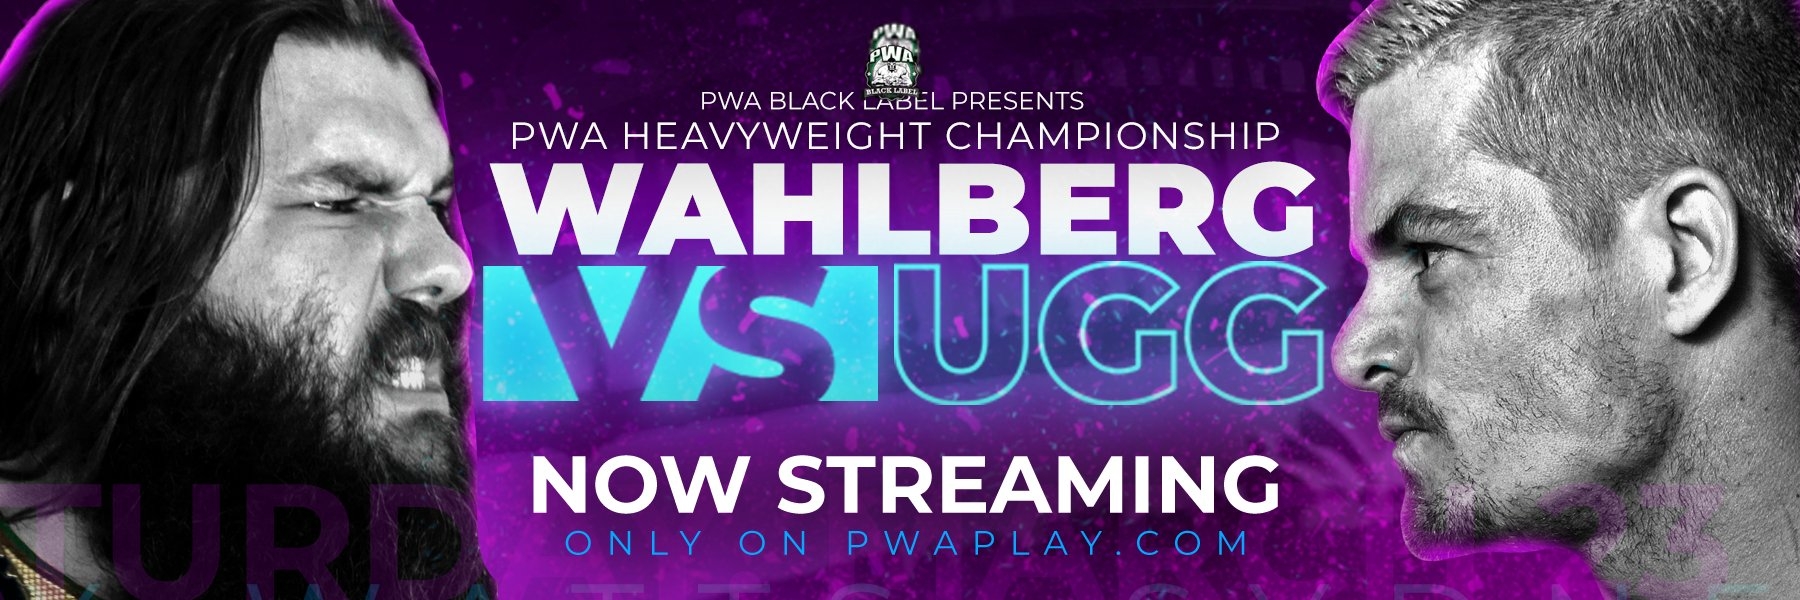 #WAHLBERGVSUGG  - STREAMING NOW